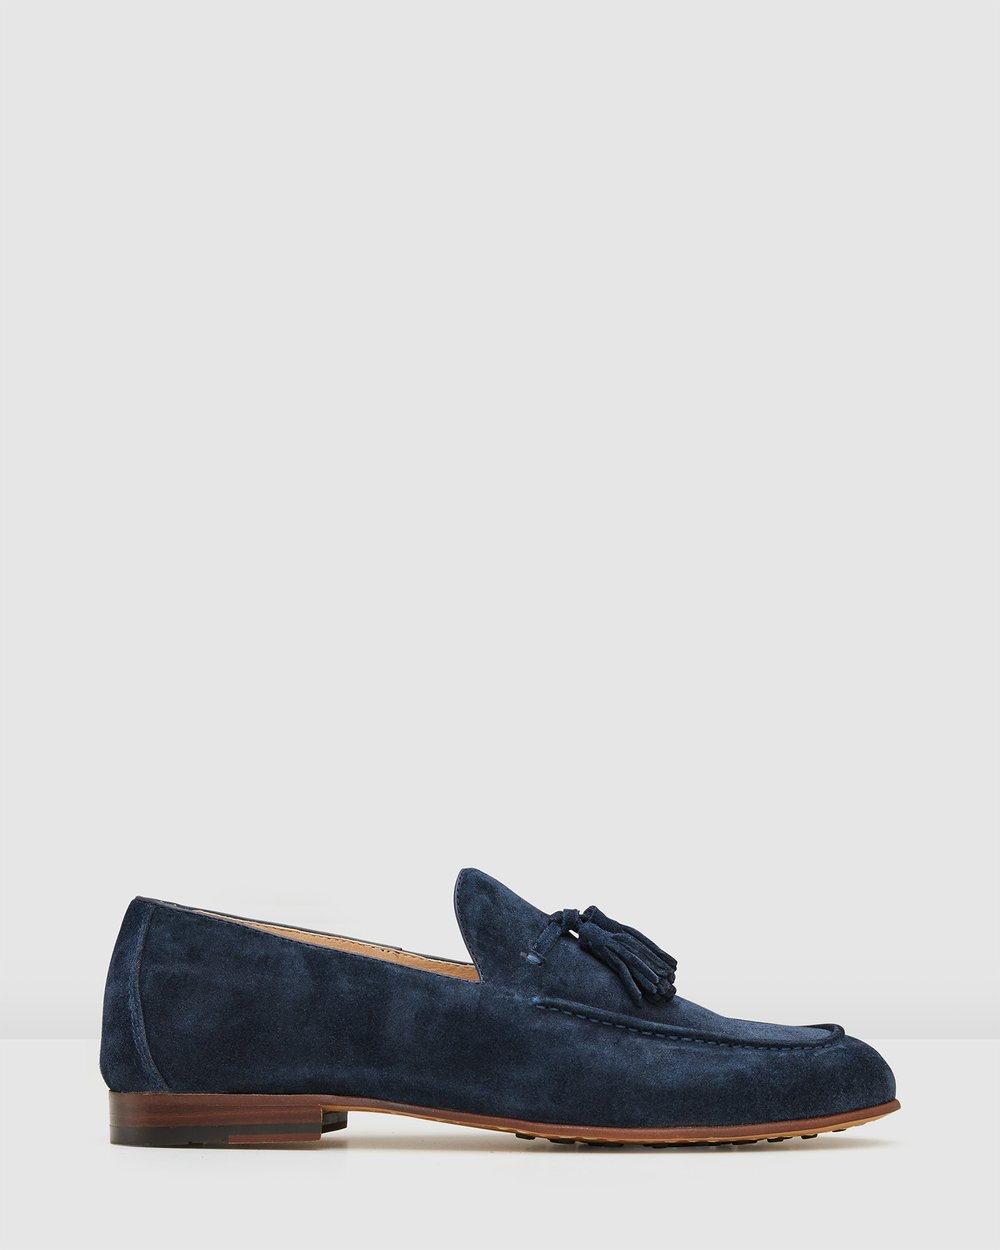 c411053c887 Belvedere Loafers by Aquila Online